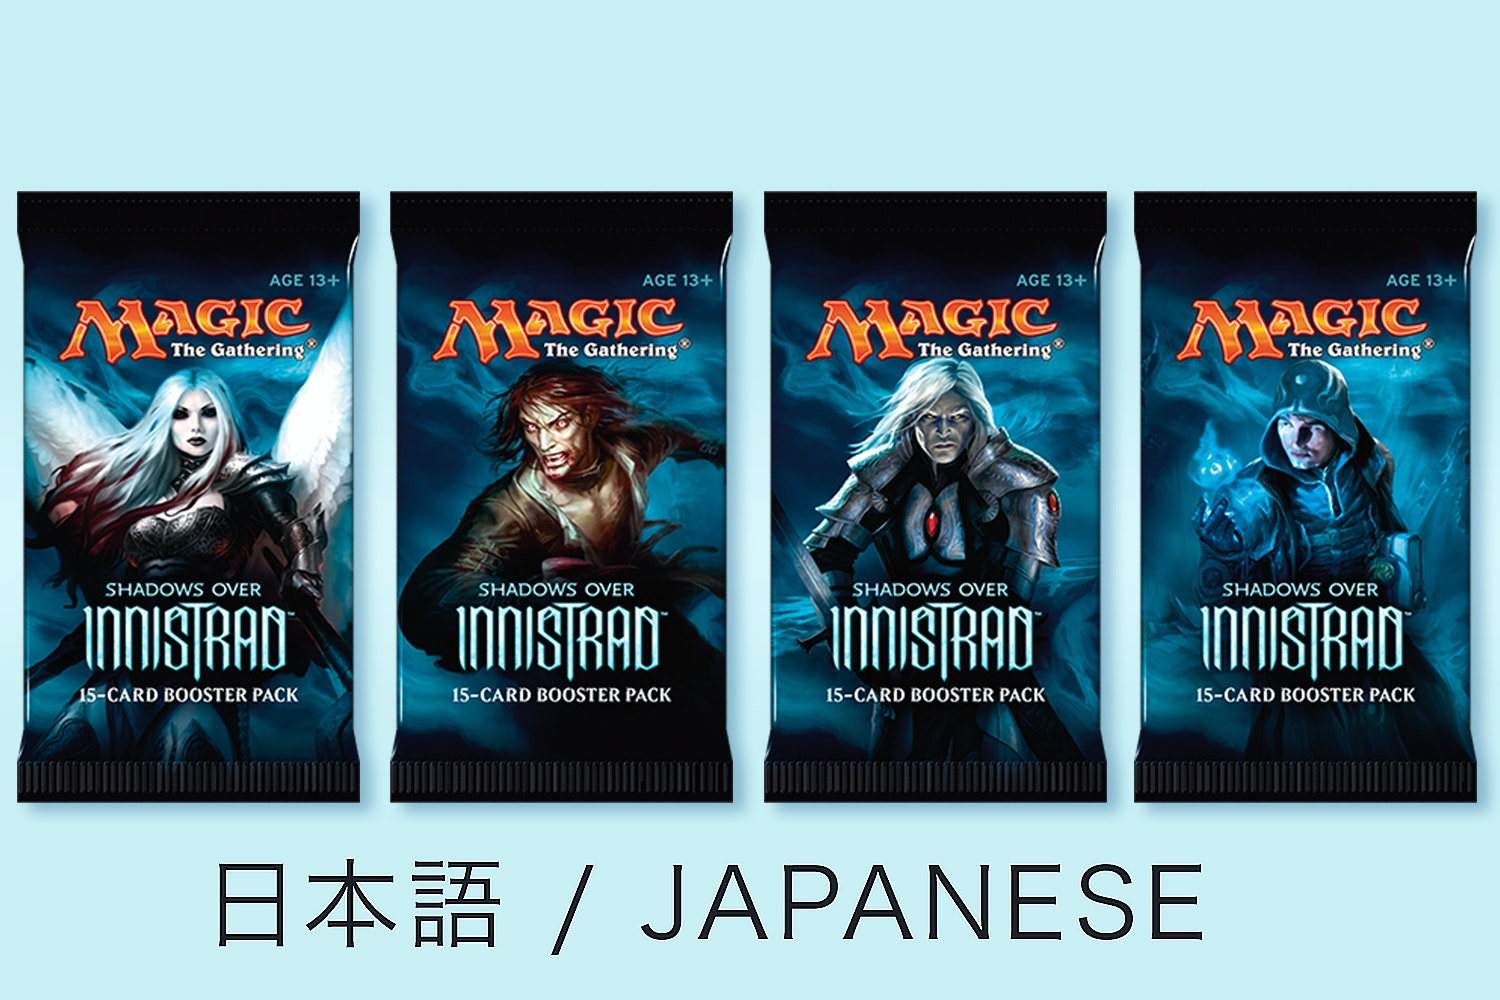 Shadows Over Innistrad in Japanese